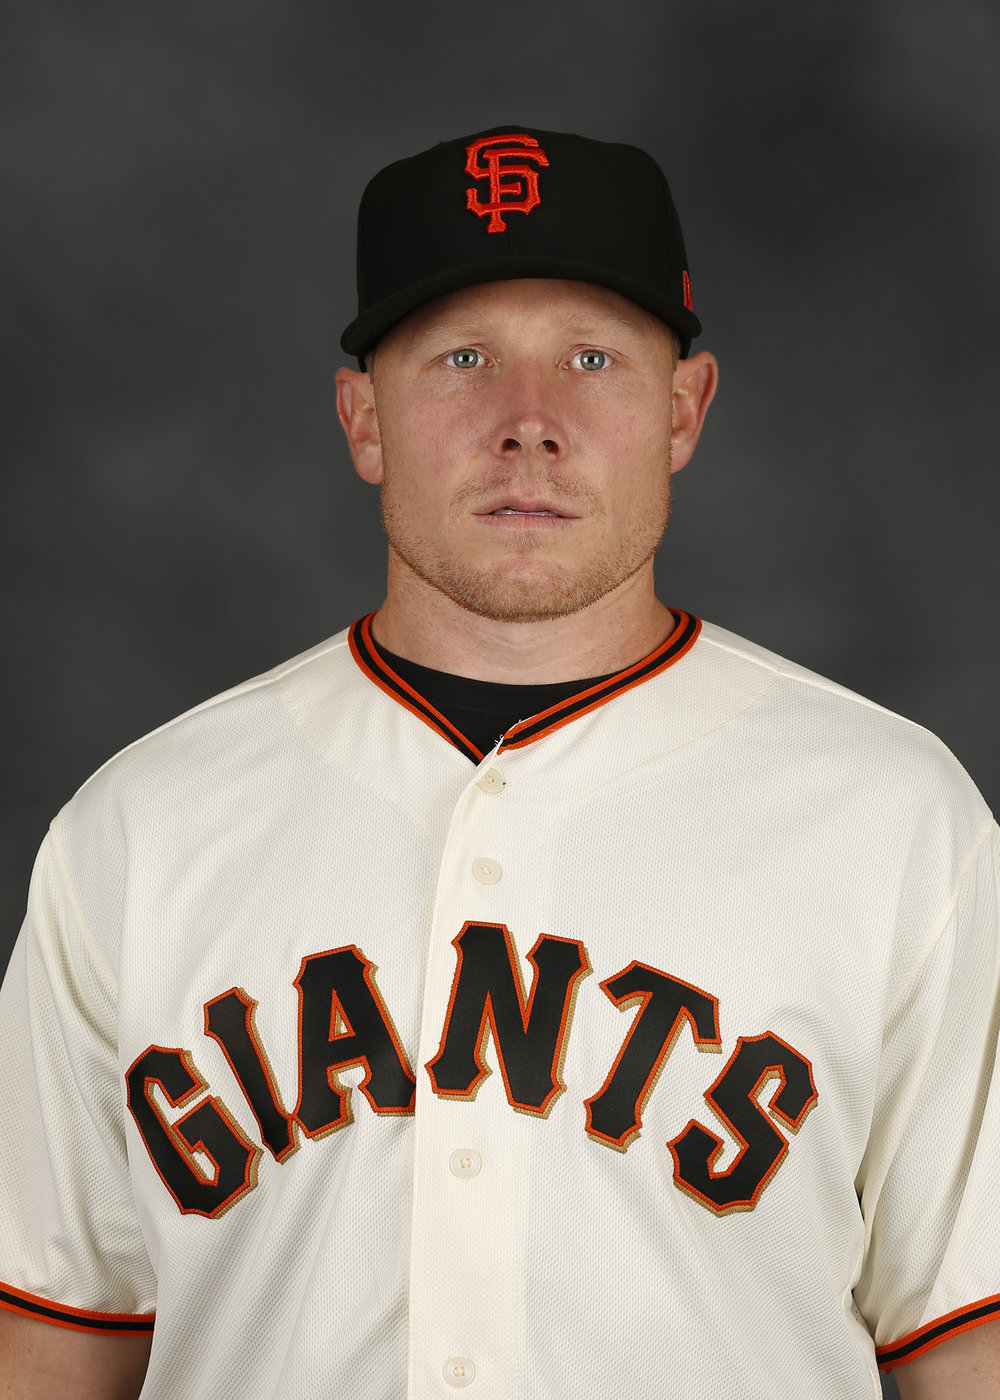 Mark Melancon   Mark Melancon enters his second season as a right-handed pitcher for the San Francisco Giants.  He is a three-time All-Star (2013, 2015, 2016) and was awarded the Trevor Hoffman Award in 2015 after leading the National League in saves.